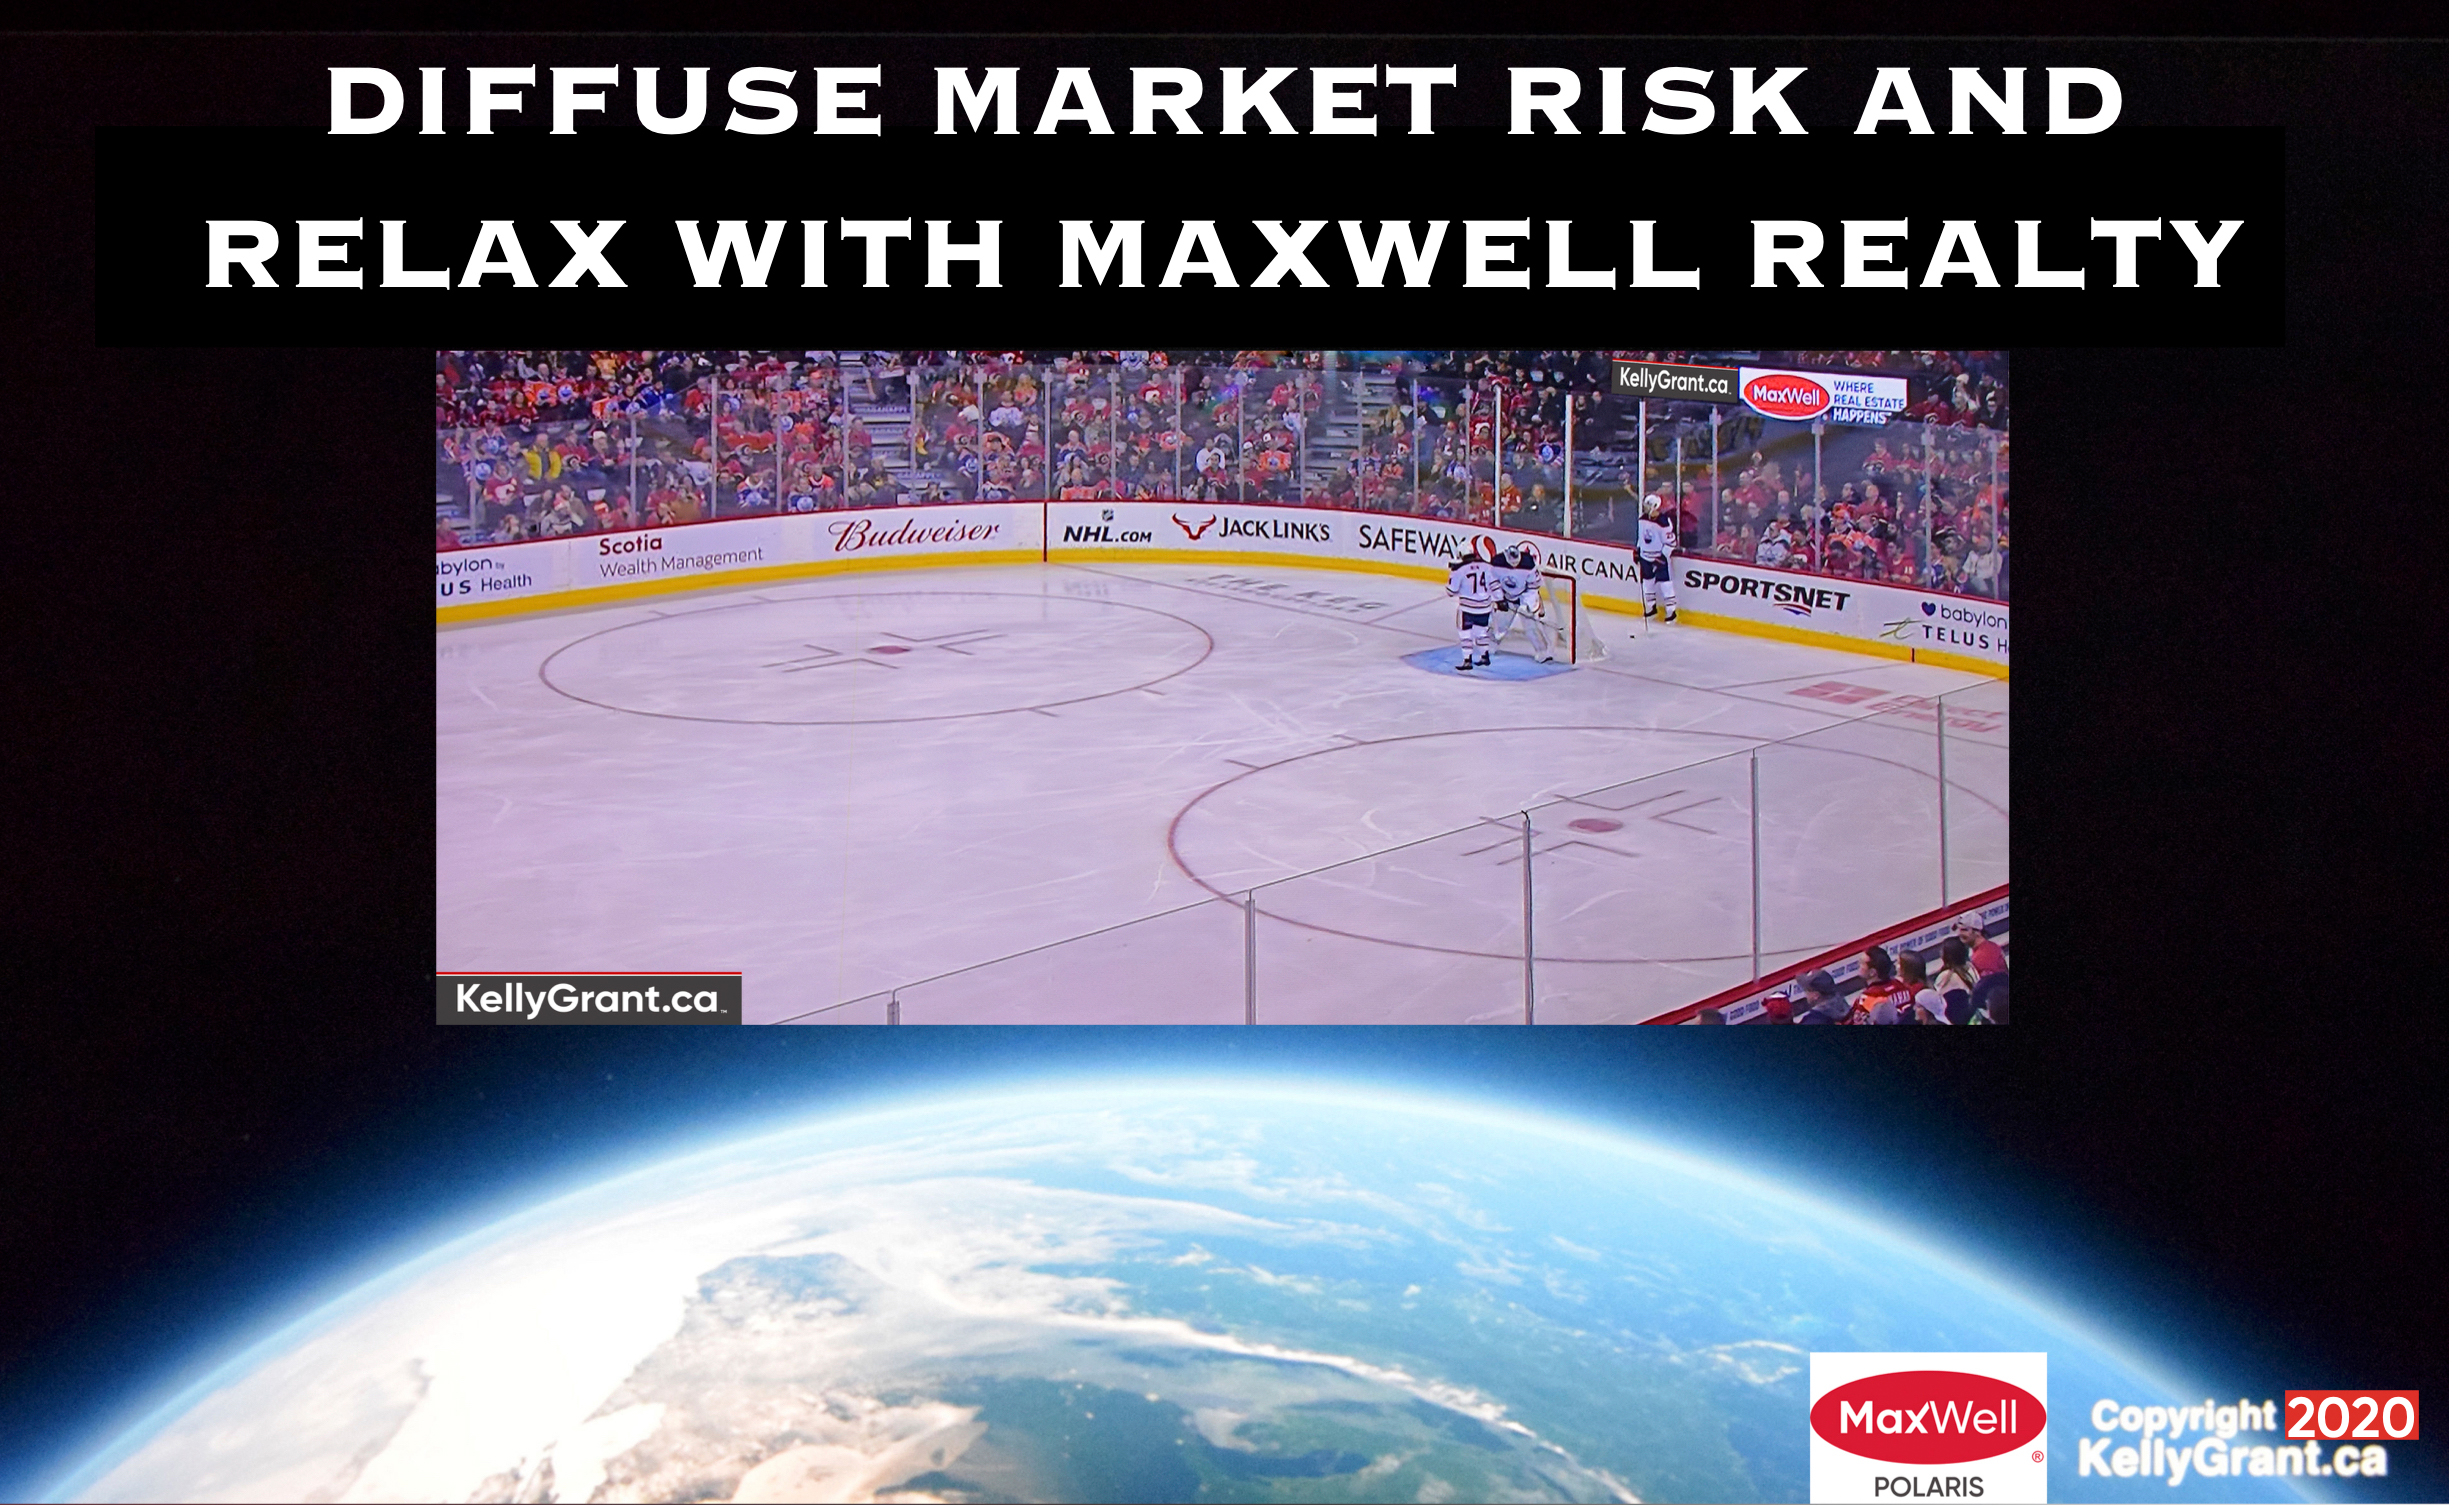 Diffuse Market Risk and Relax with MaxWell Realty